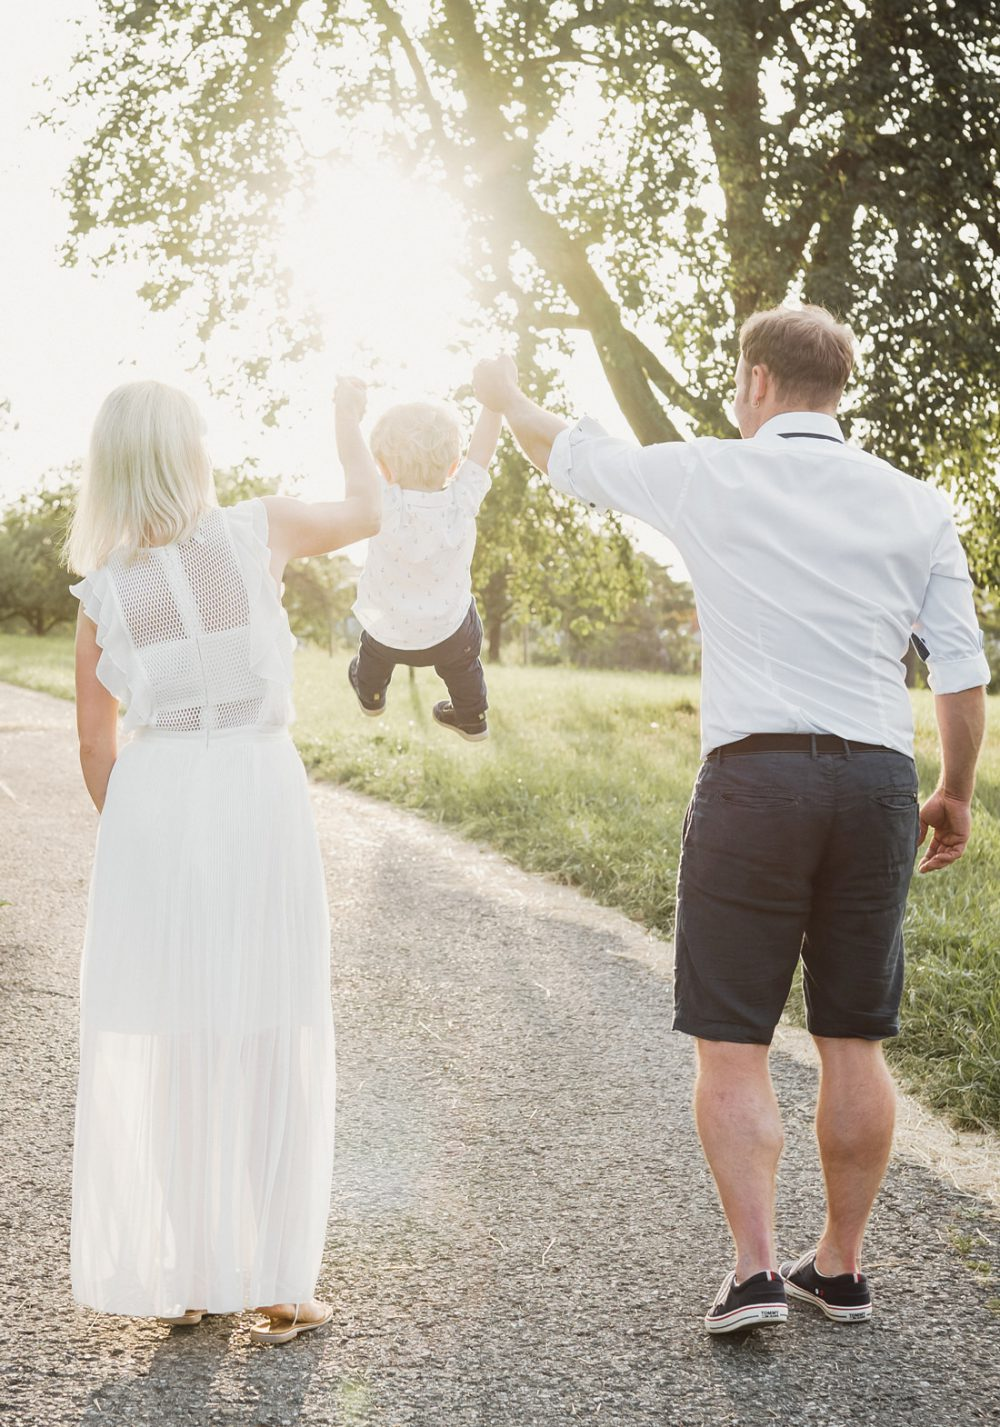 momentlichkeiten | Familienshooting | After-Wedding-Shooting